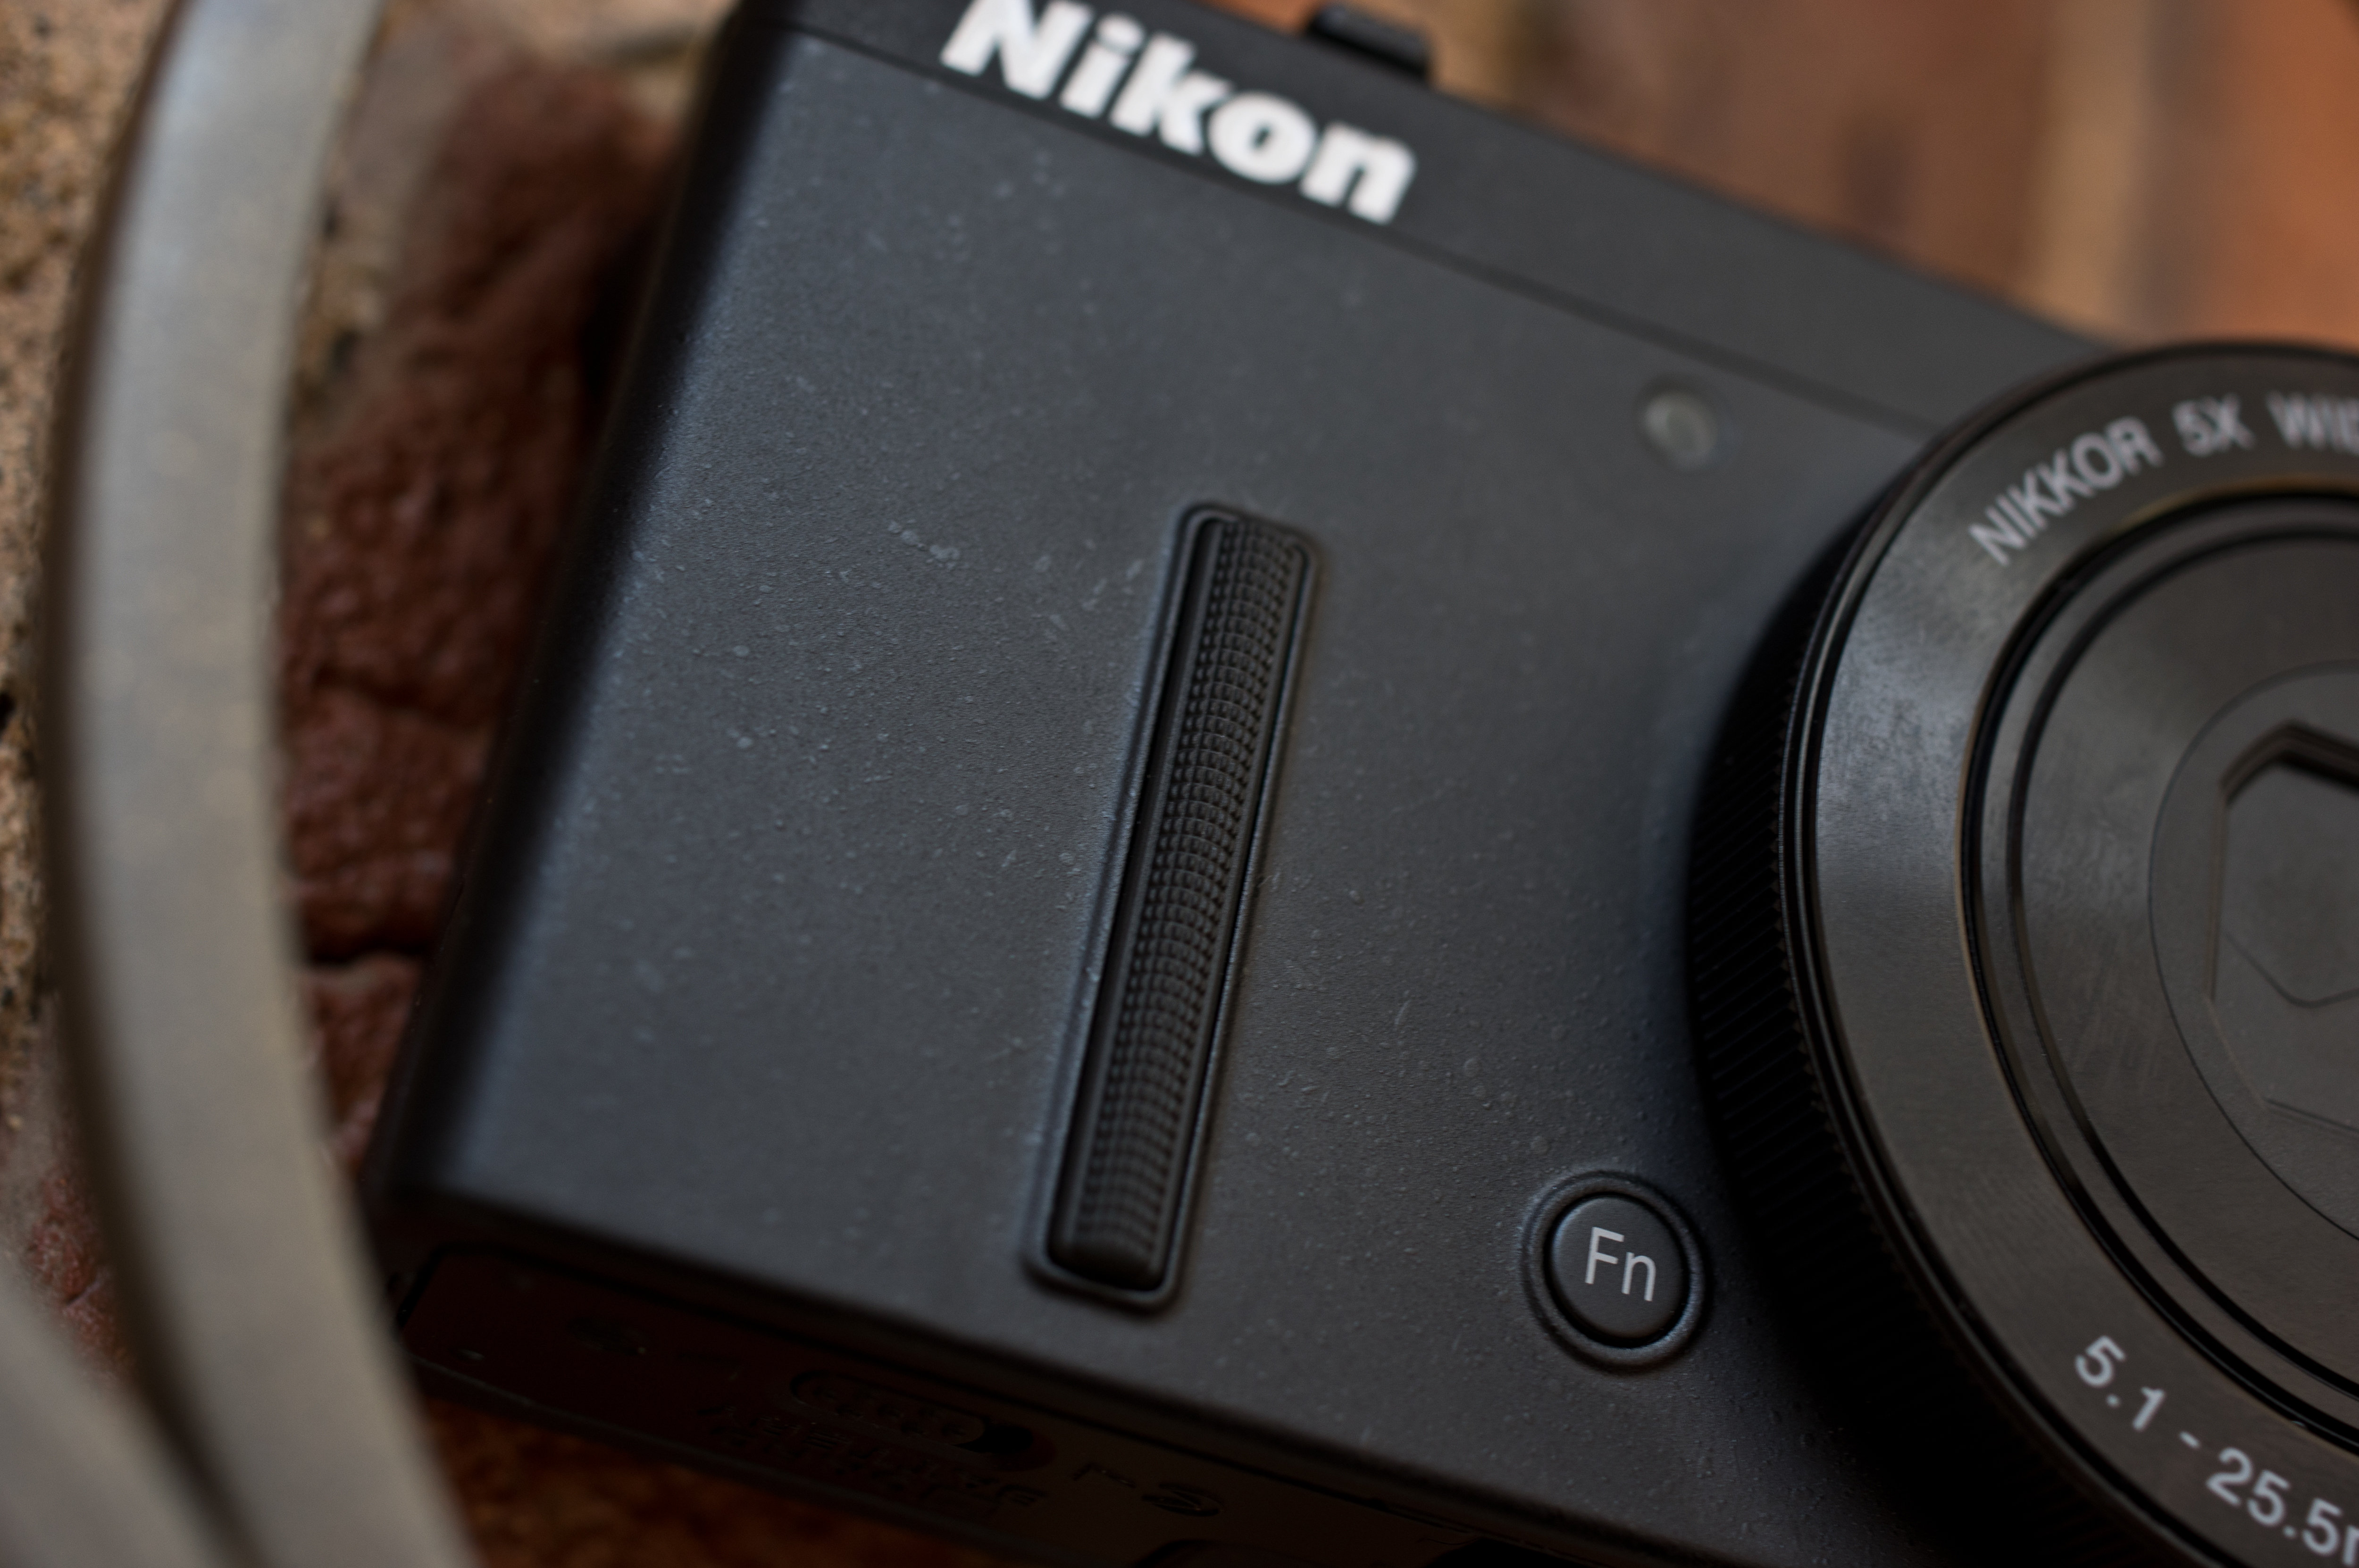 A photograph of the Nikon Coolpix P340's front grip.